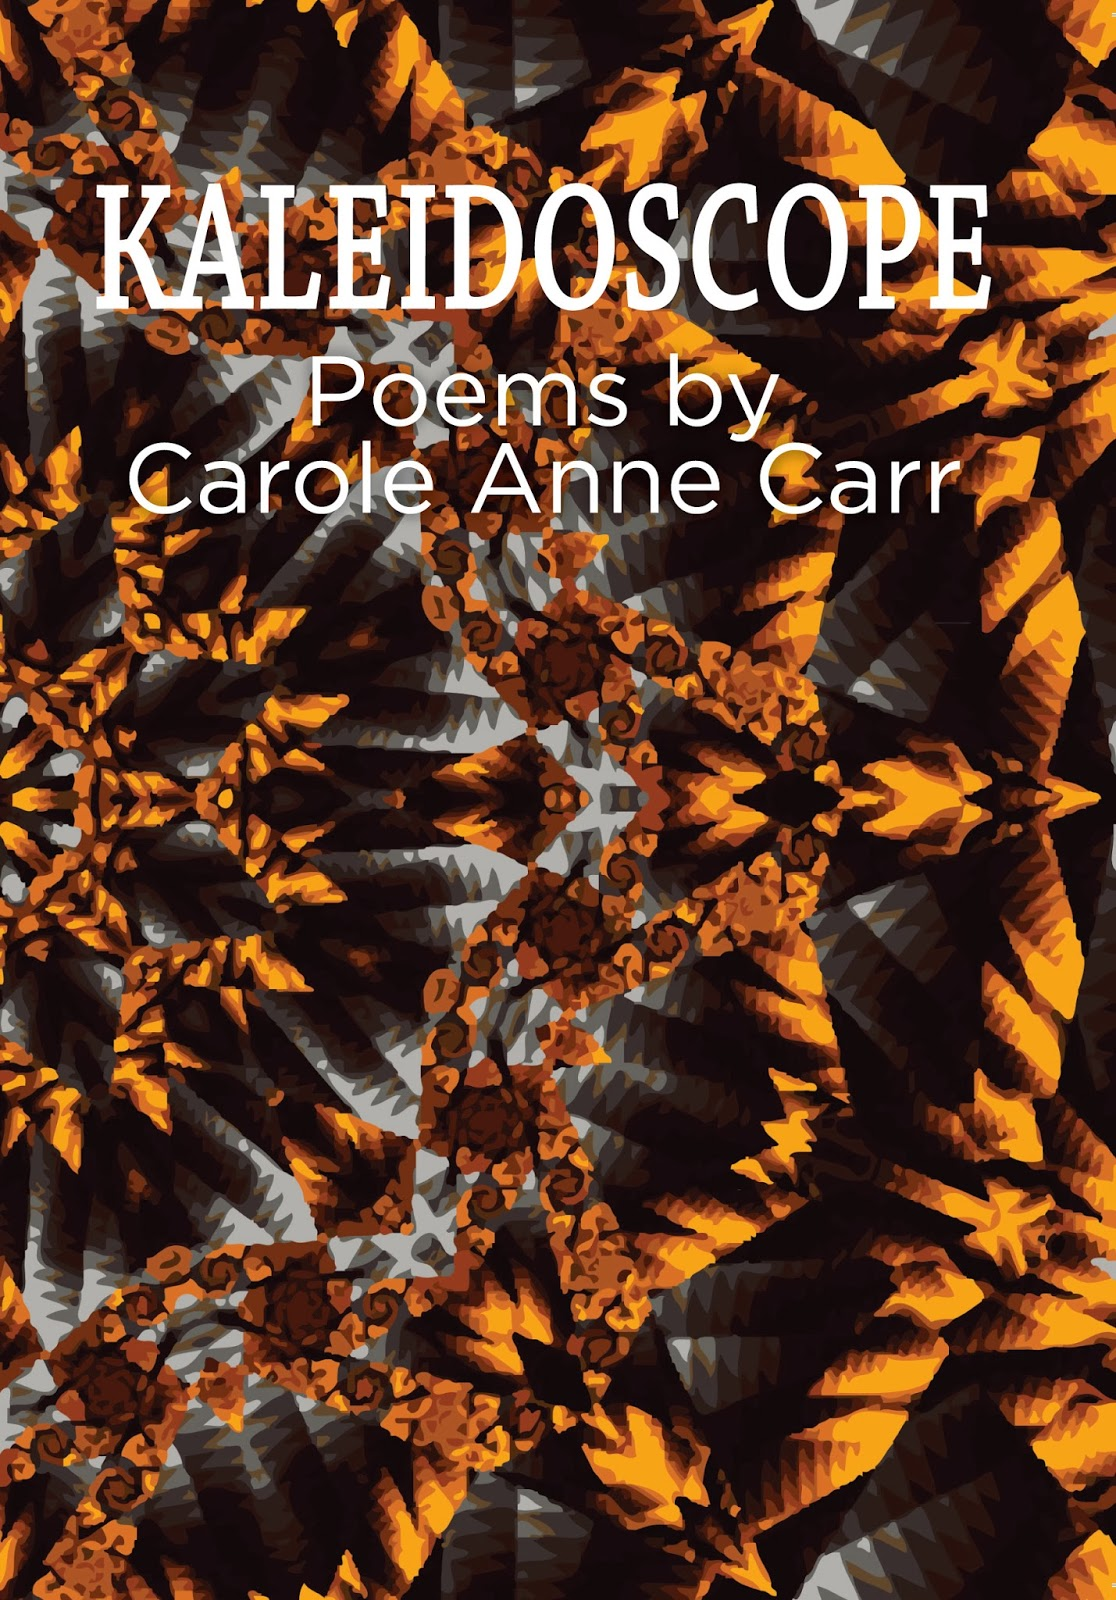 Kaleidoscope - poems by Carole Anne Carr